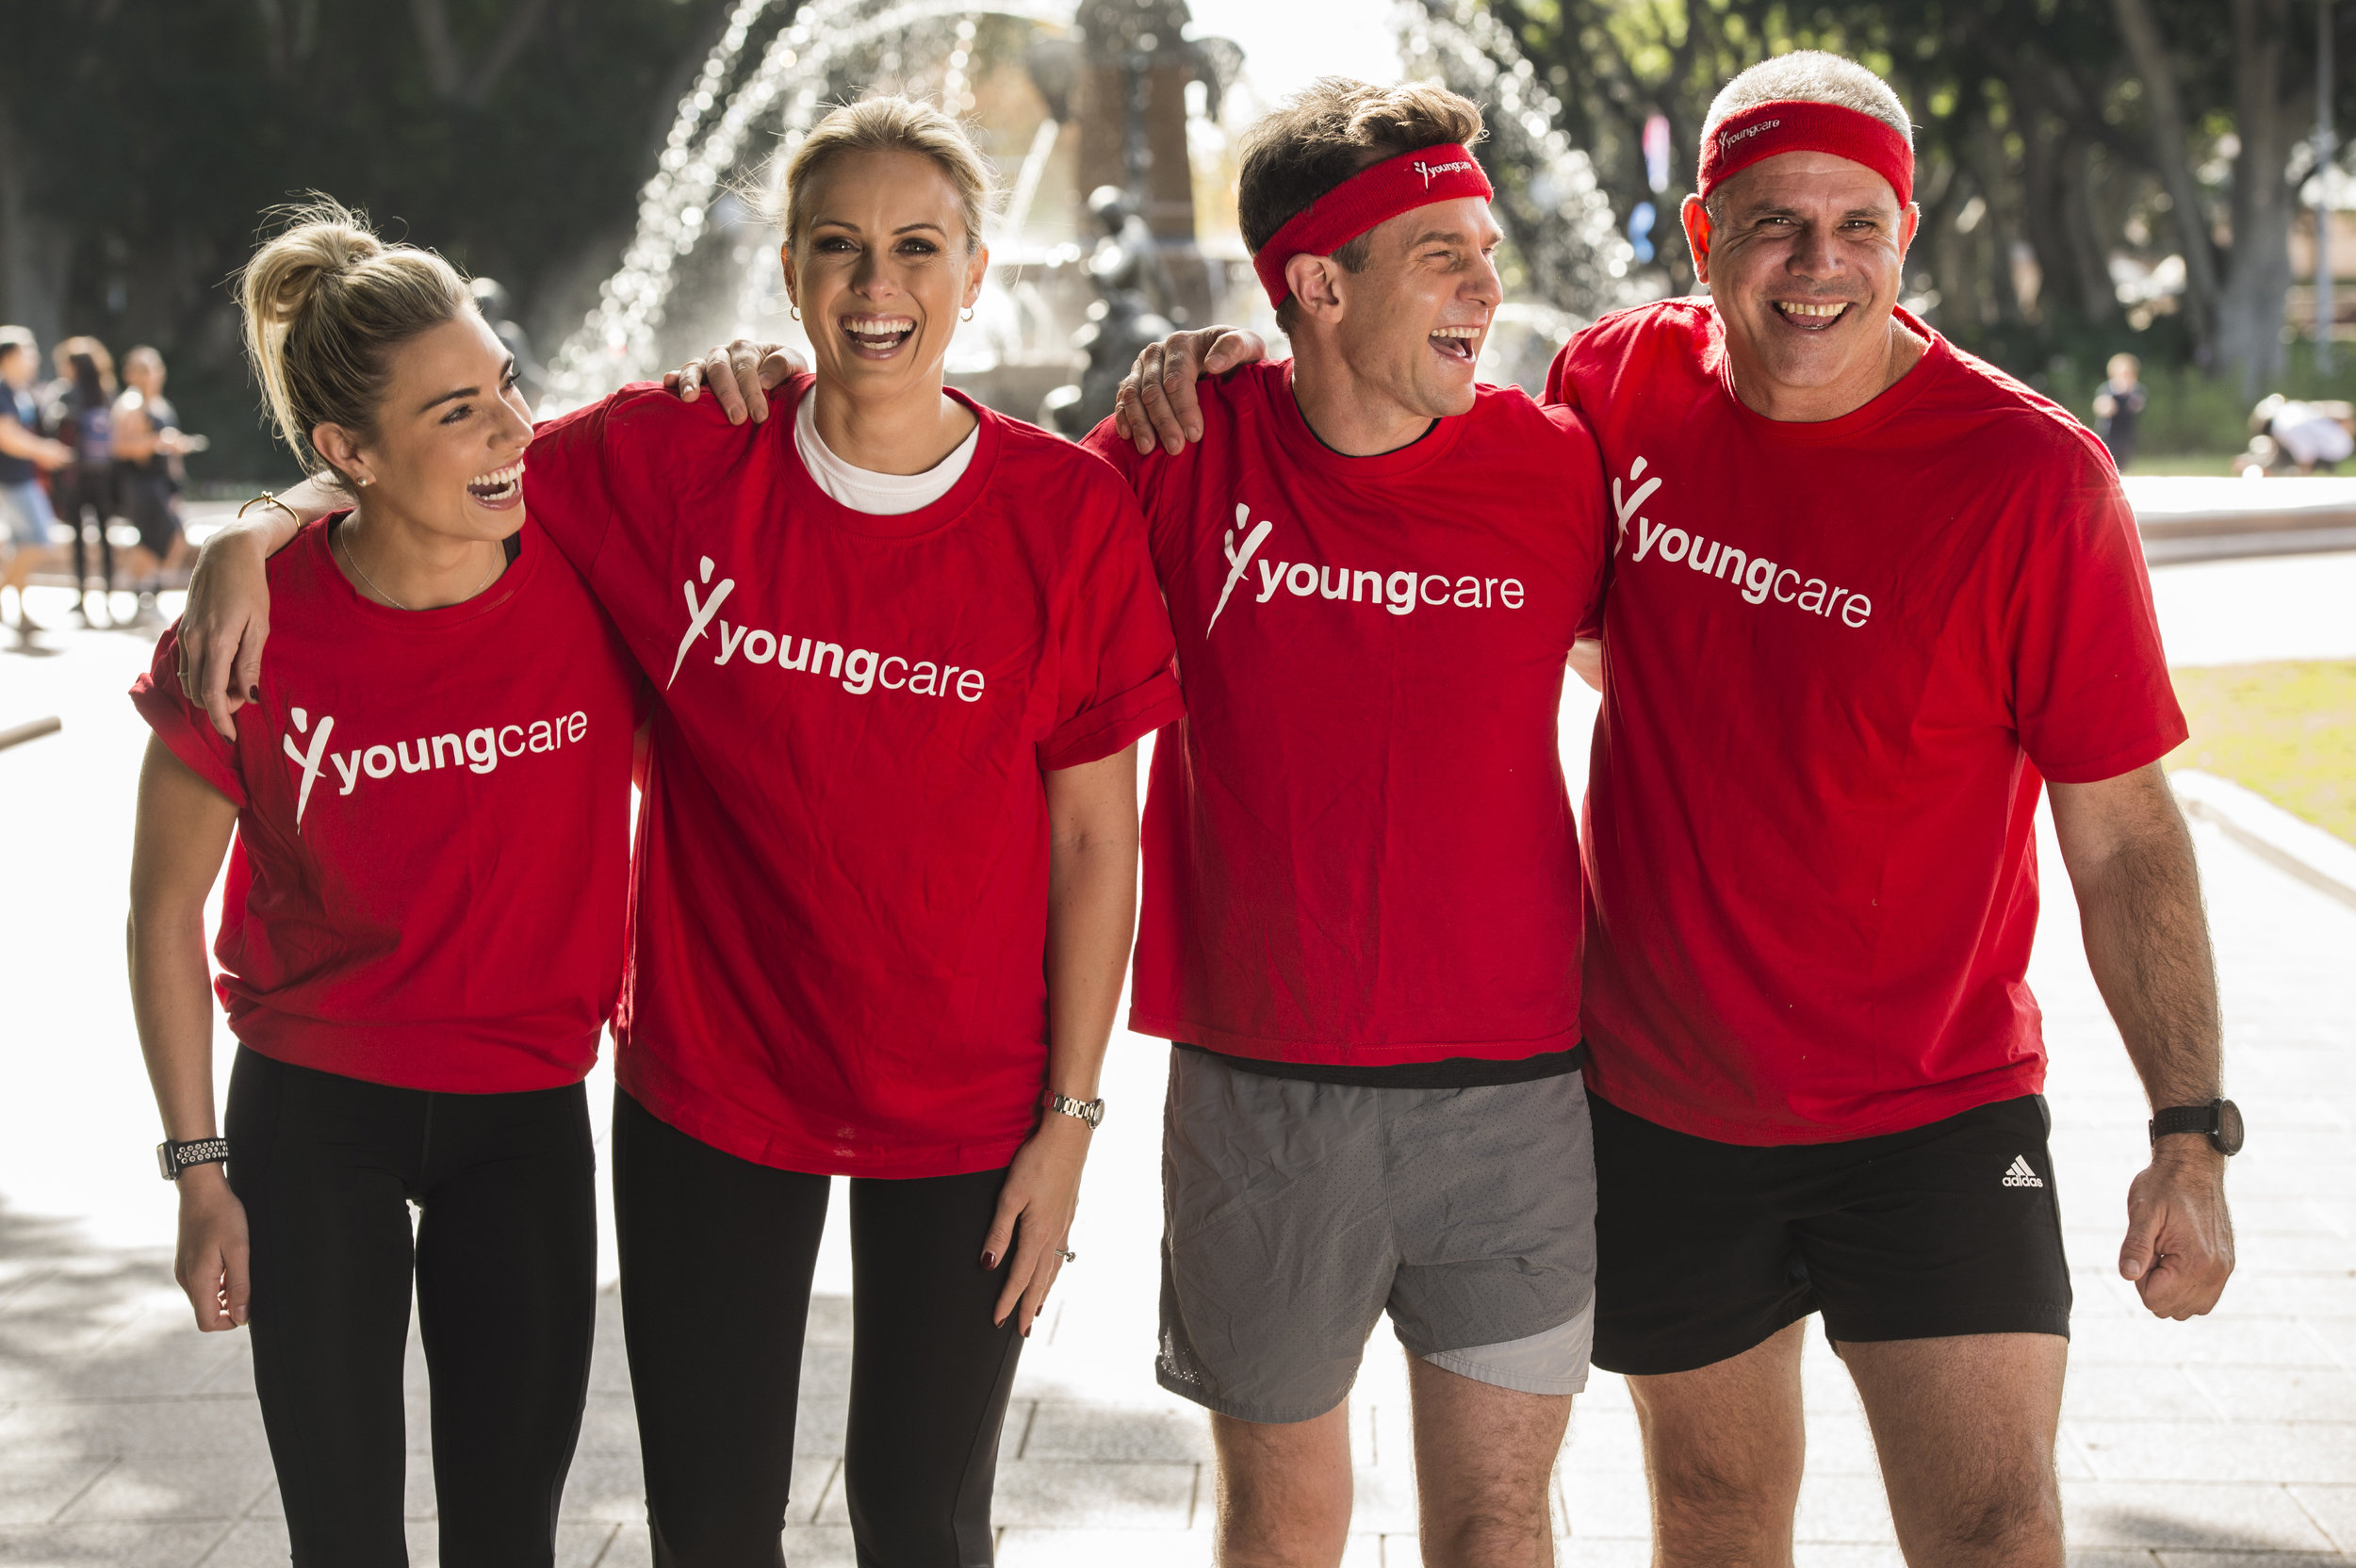 Pictured: Lauren Hannaford - A Wiggles dancer alumni, David Campbell - Australian Musician and TV presenter, and Anthony Ryan, - the CEO of Youngcare.